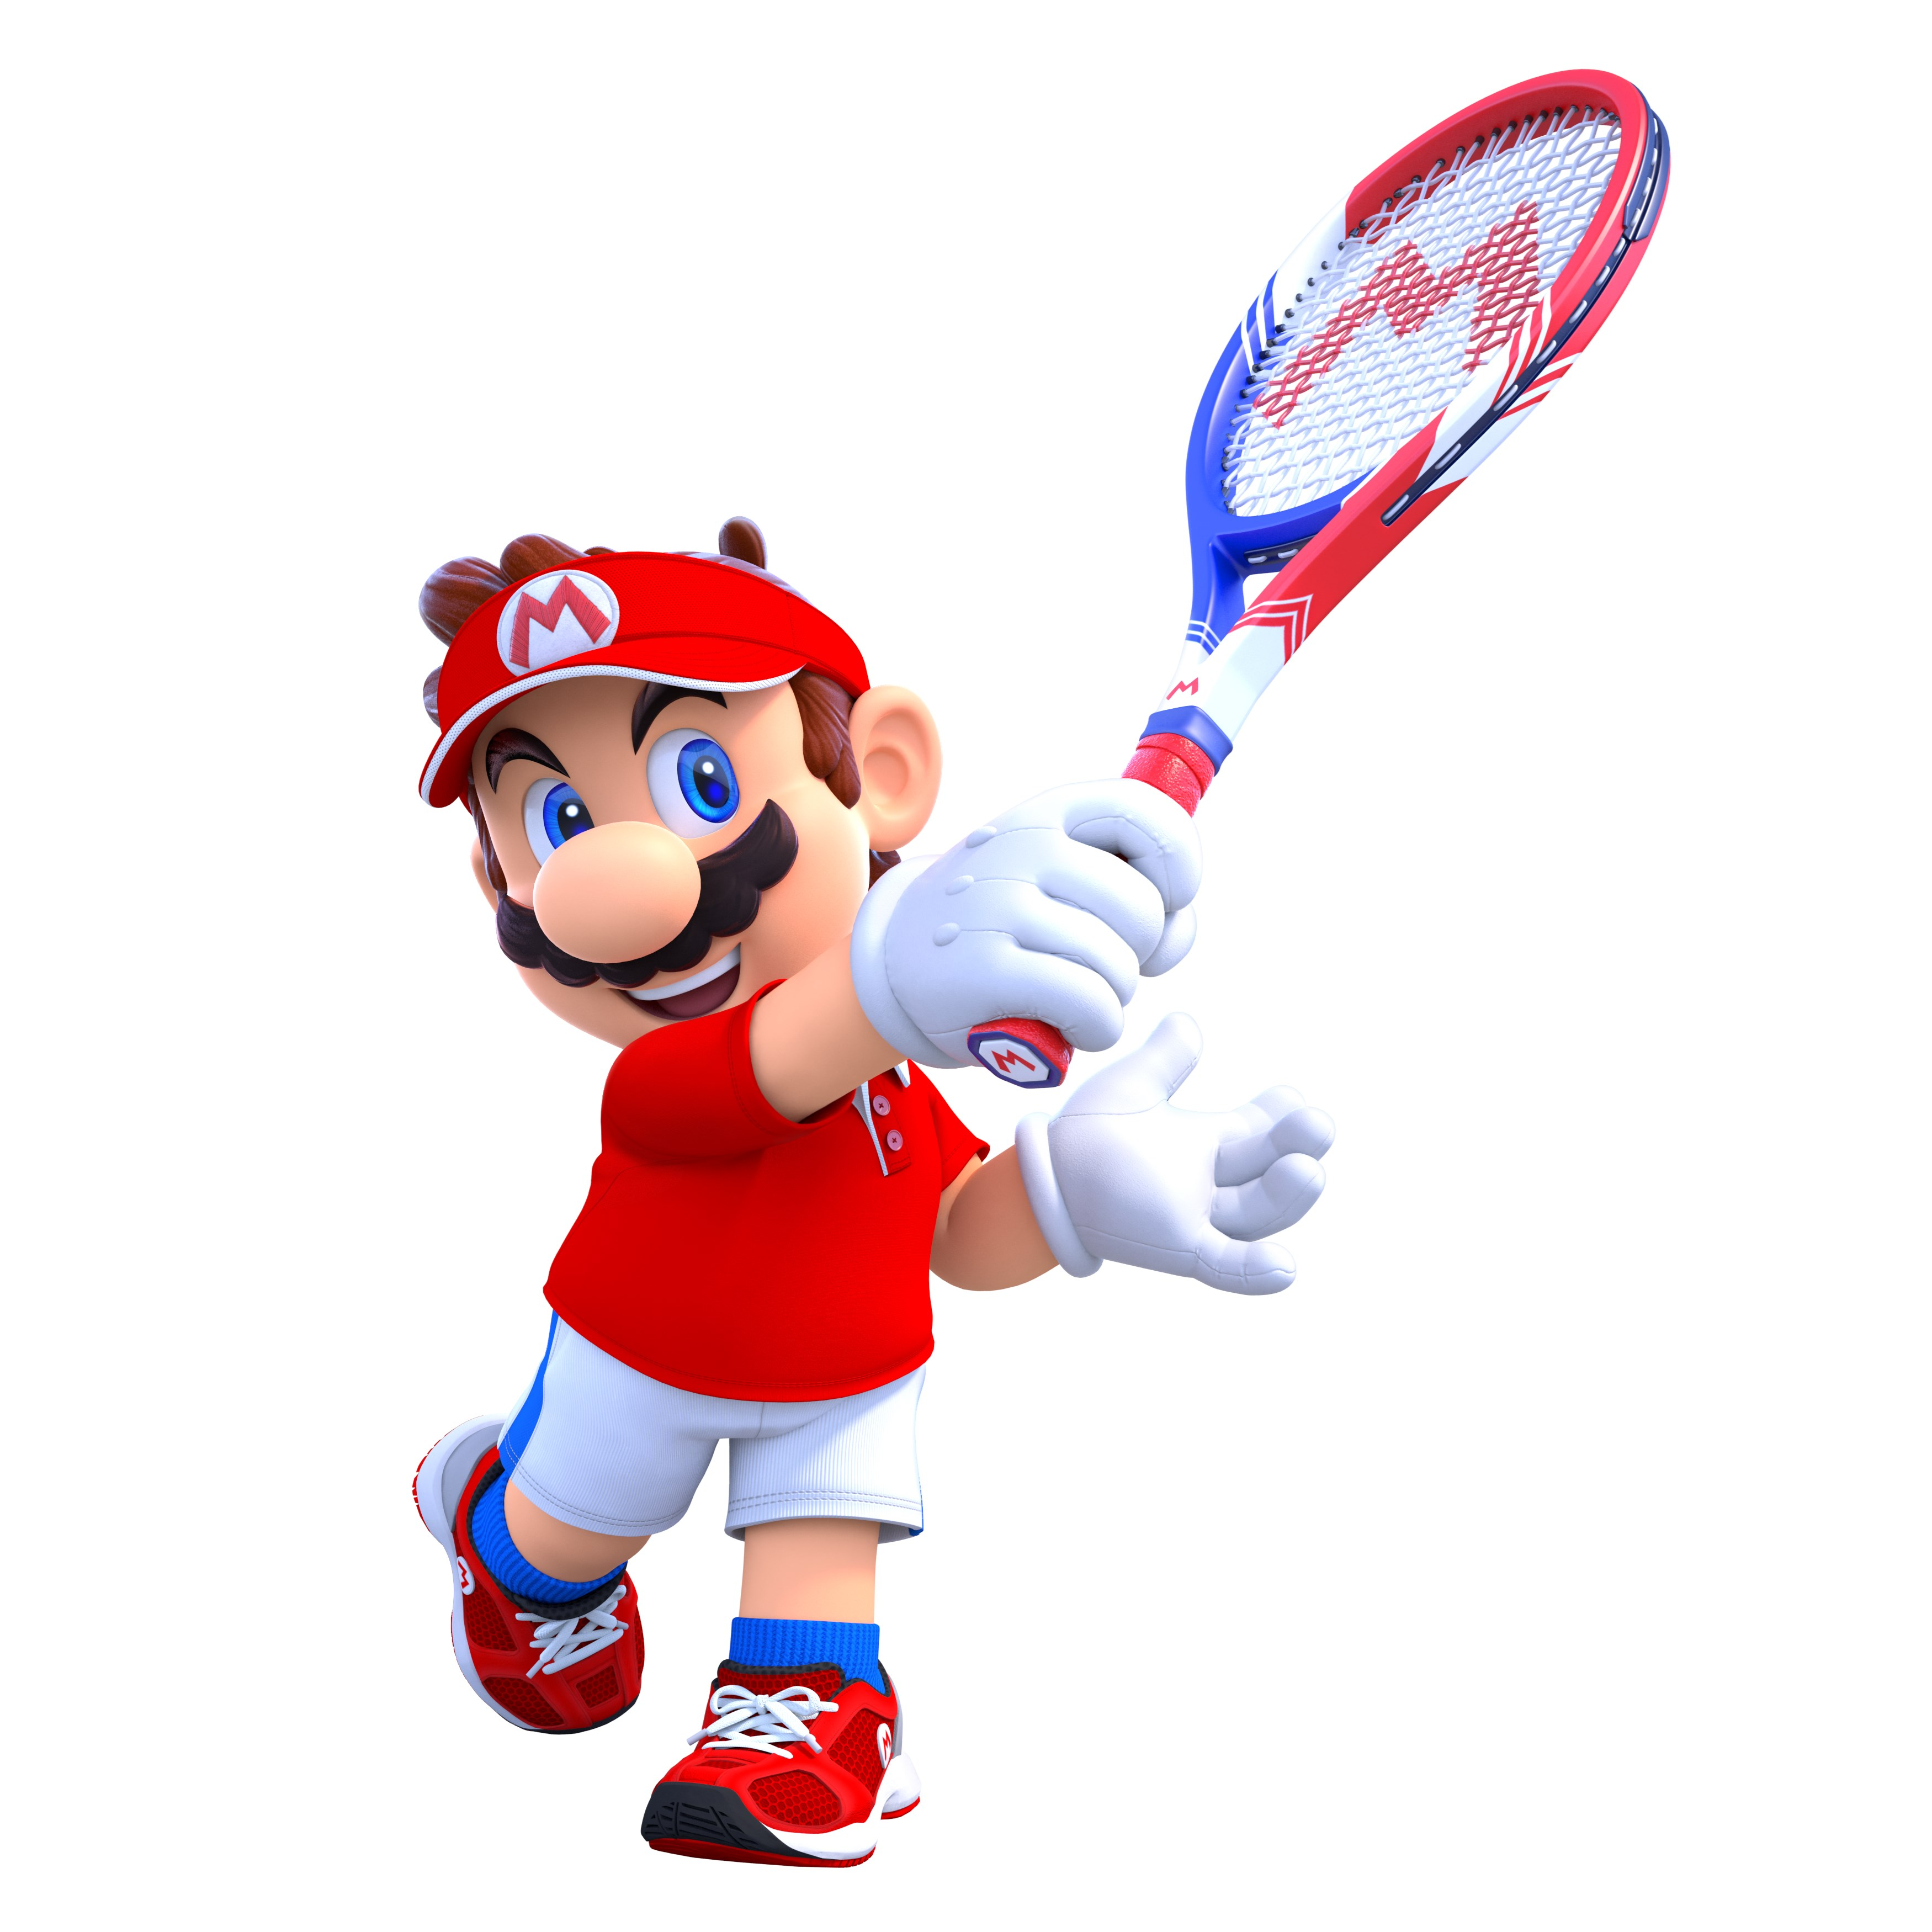 c52a79f0d3c50 Switch MarioTennisAces char 02 png jpgcopy ·  Switch MarioTennisAces char 03 png jpgcopy ·  Switch MarioTennisAces char 04 png jpgcopy